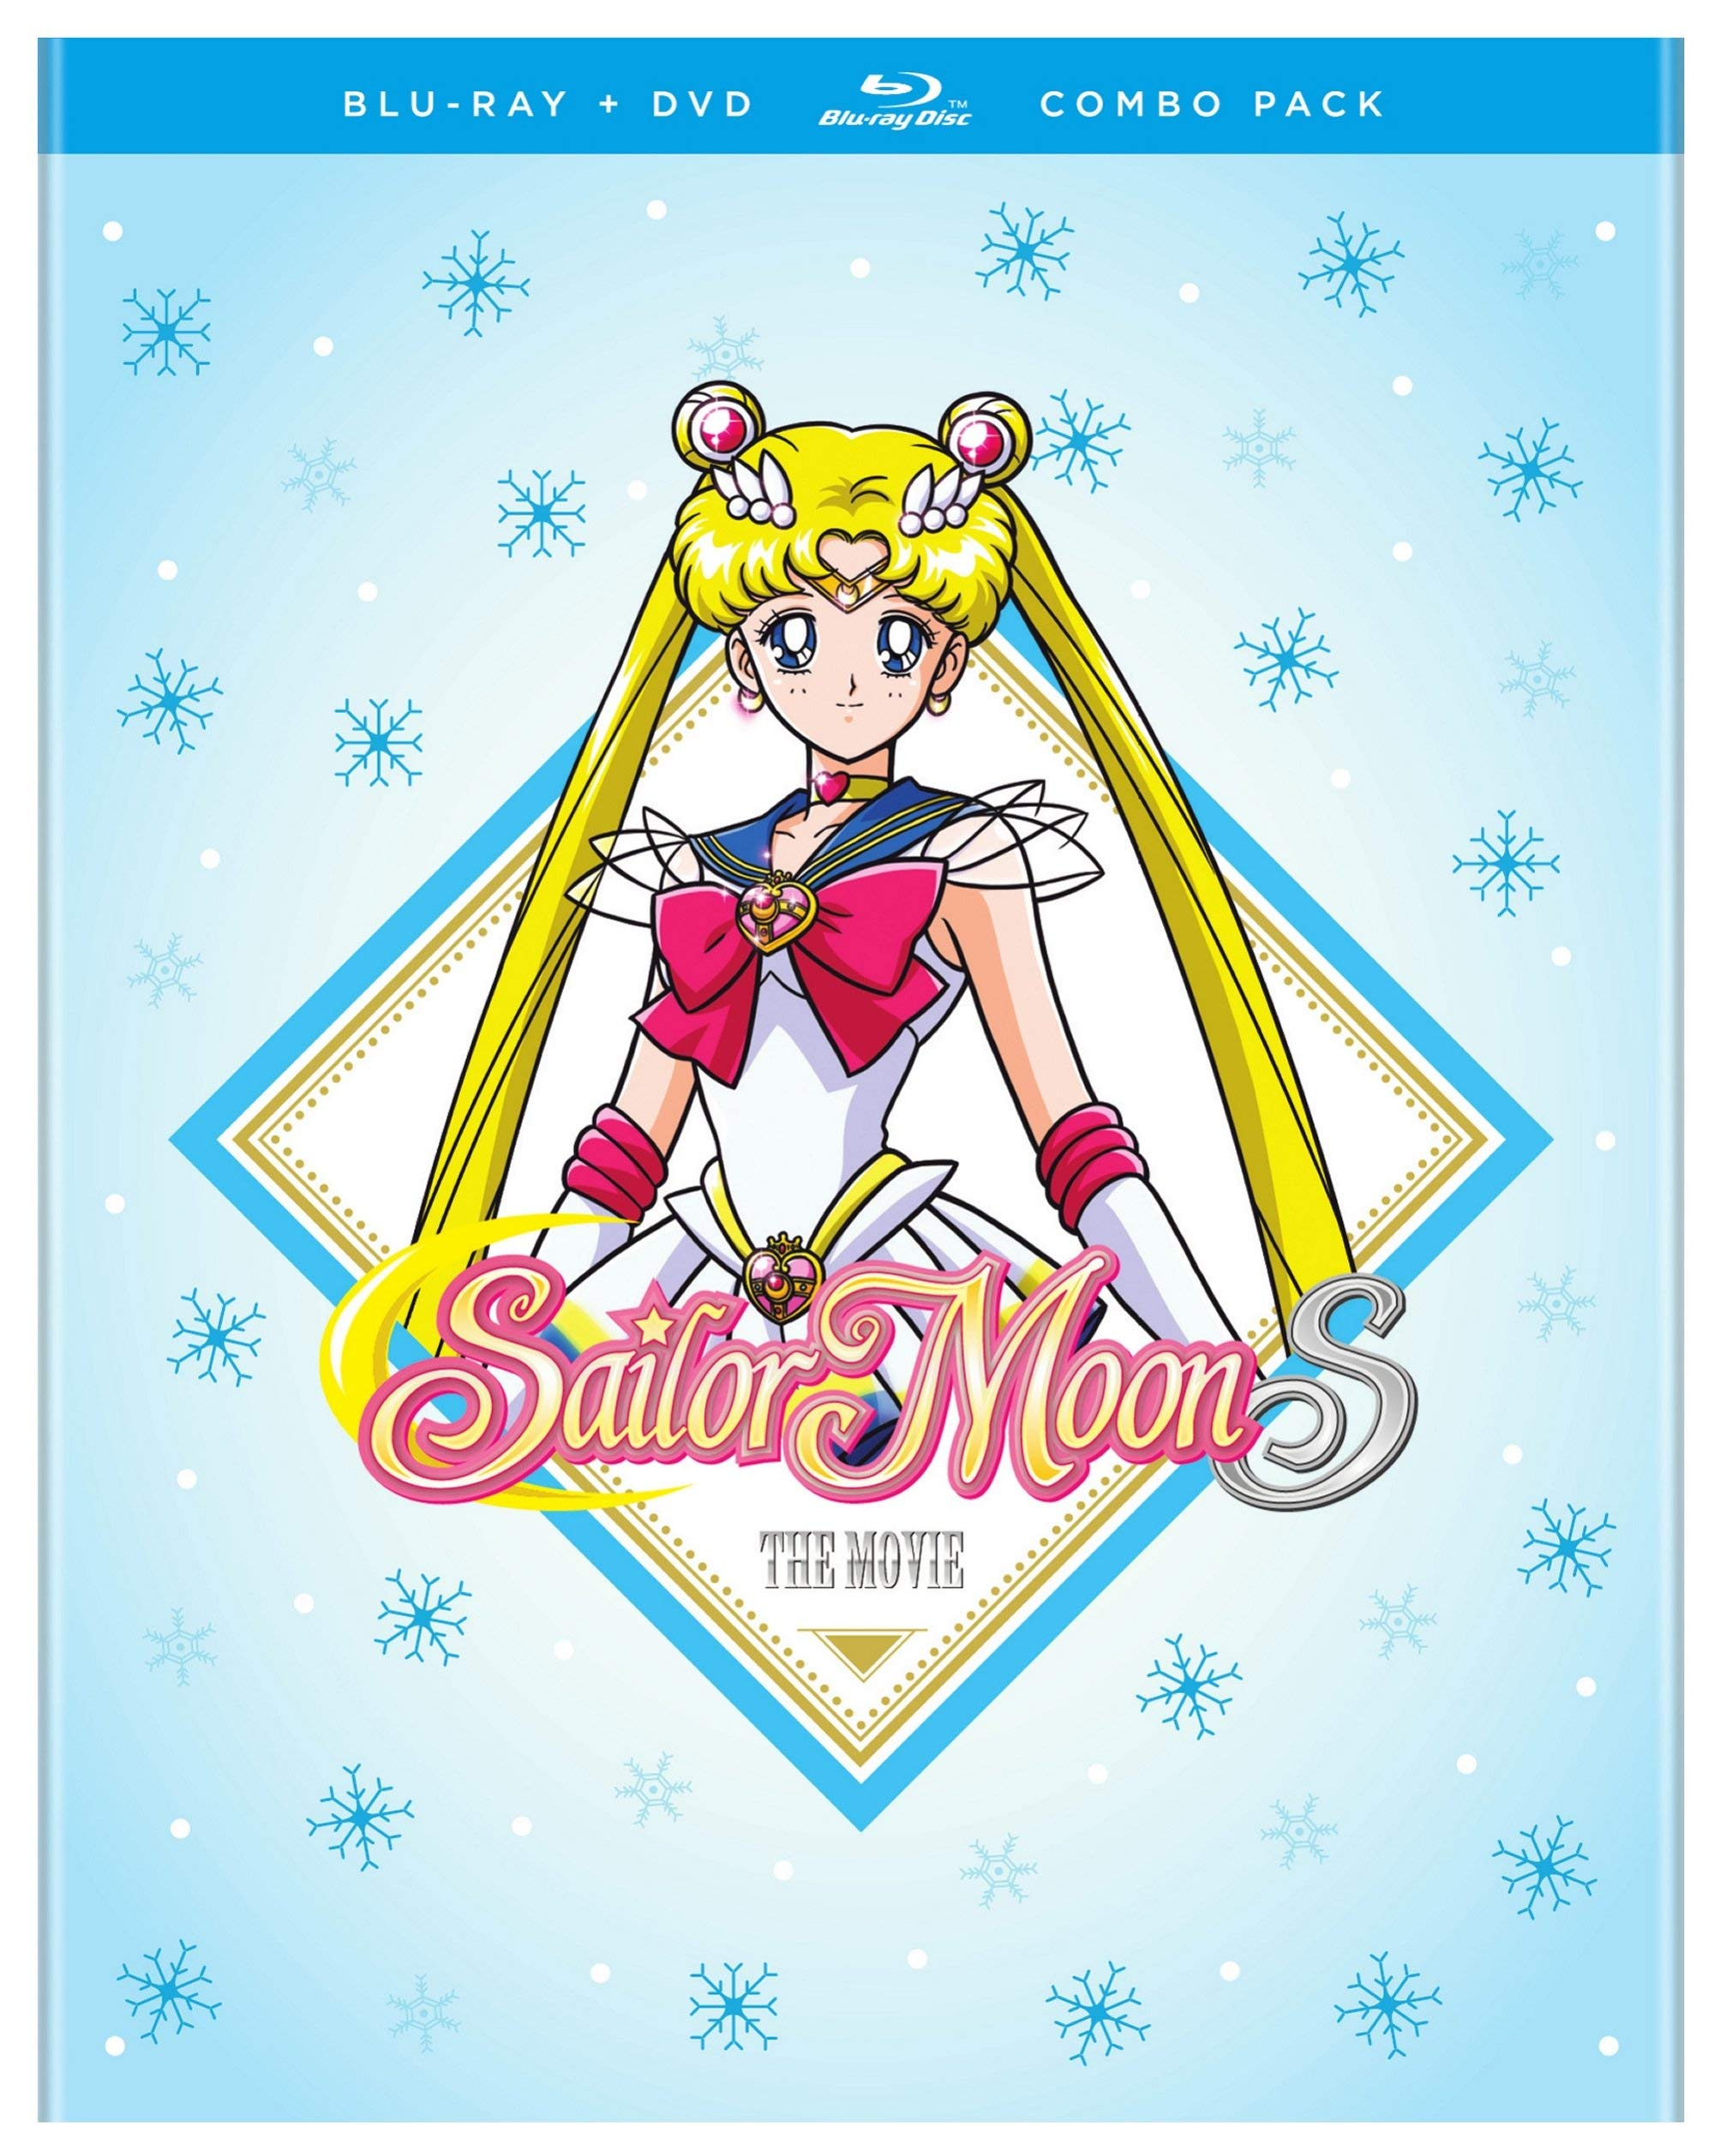 Blu-ray : Sailor Moon S The Movie Combo Pack (With DVD, 2 Pack, Amaray Case)